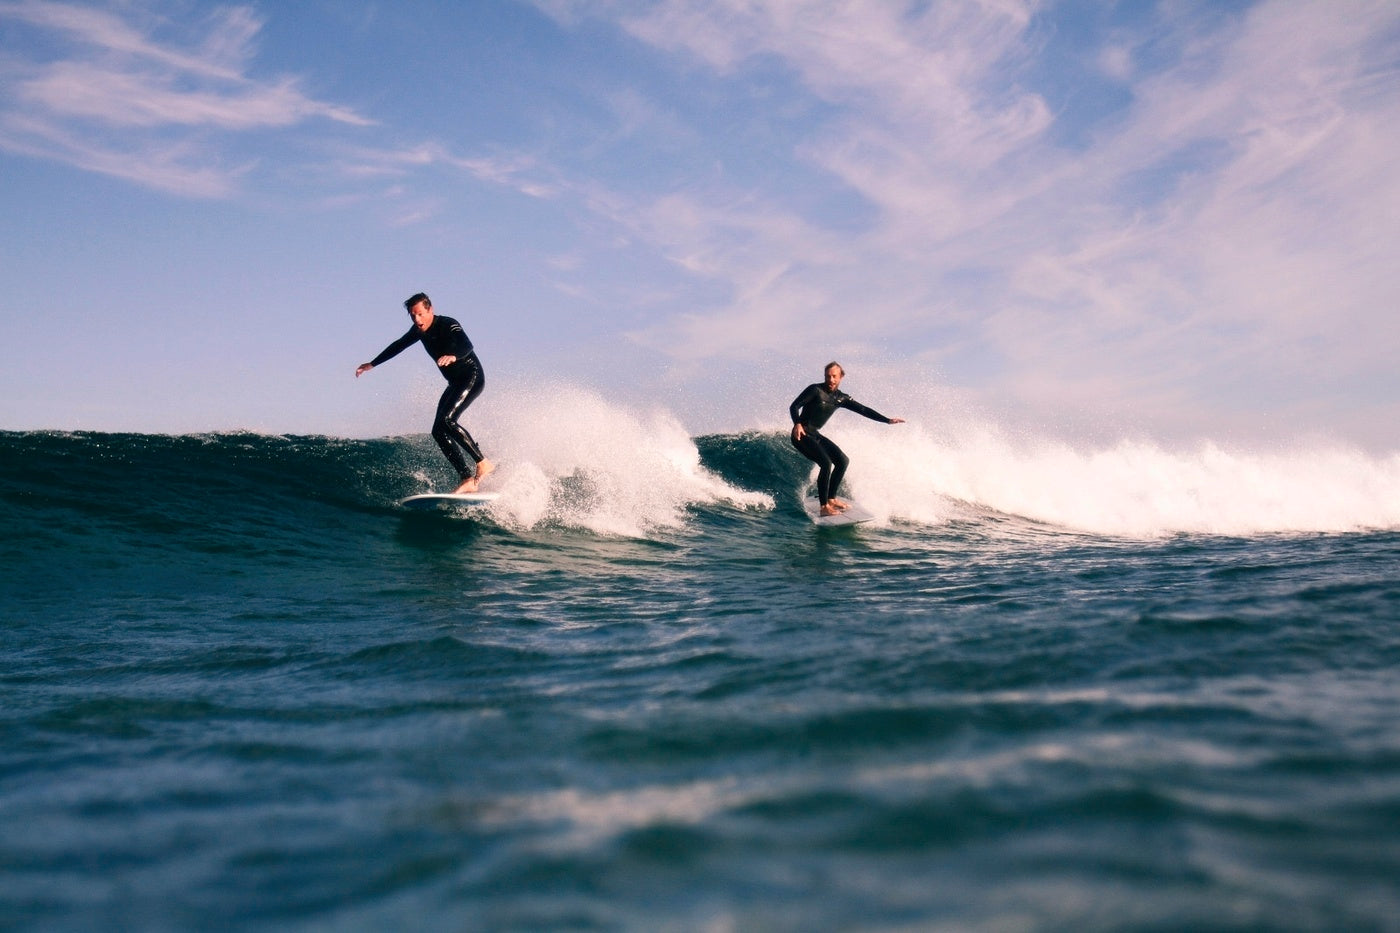 Surfers Sam Bleakley and Mike Lay share a wave under a blue Cornish sky